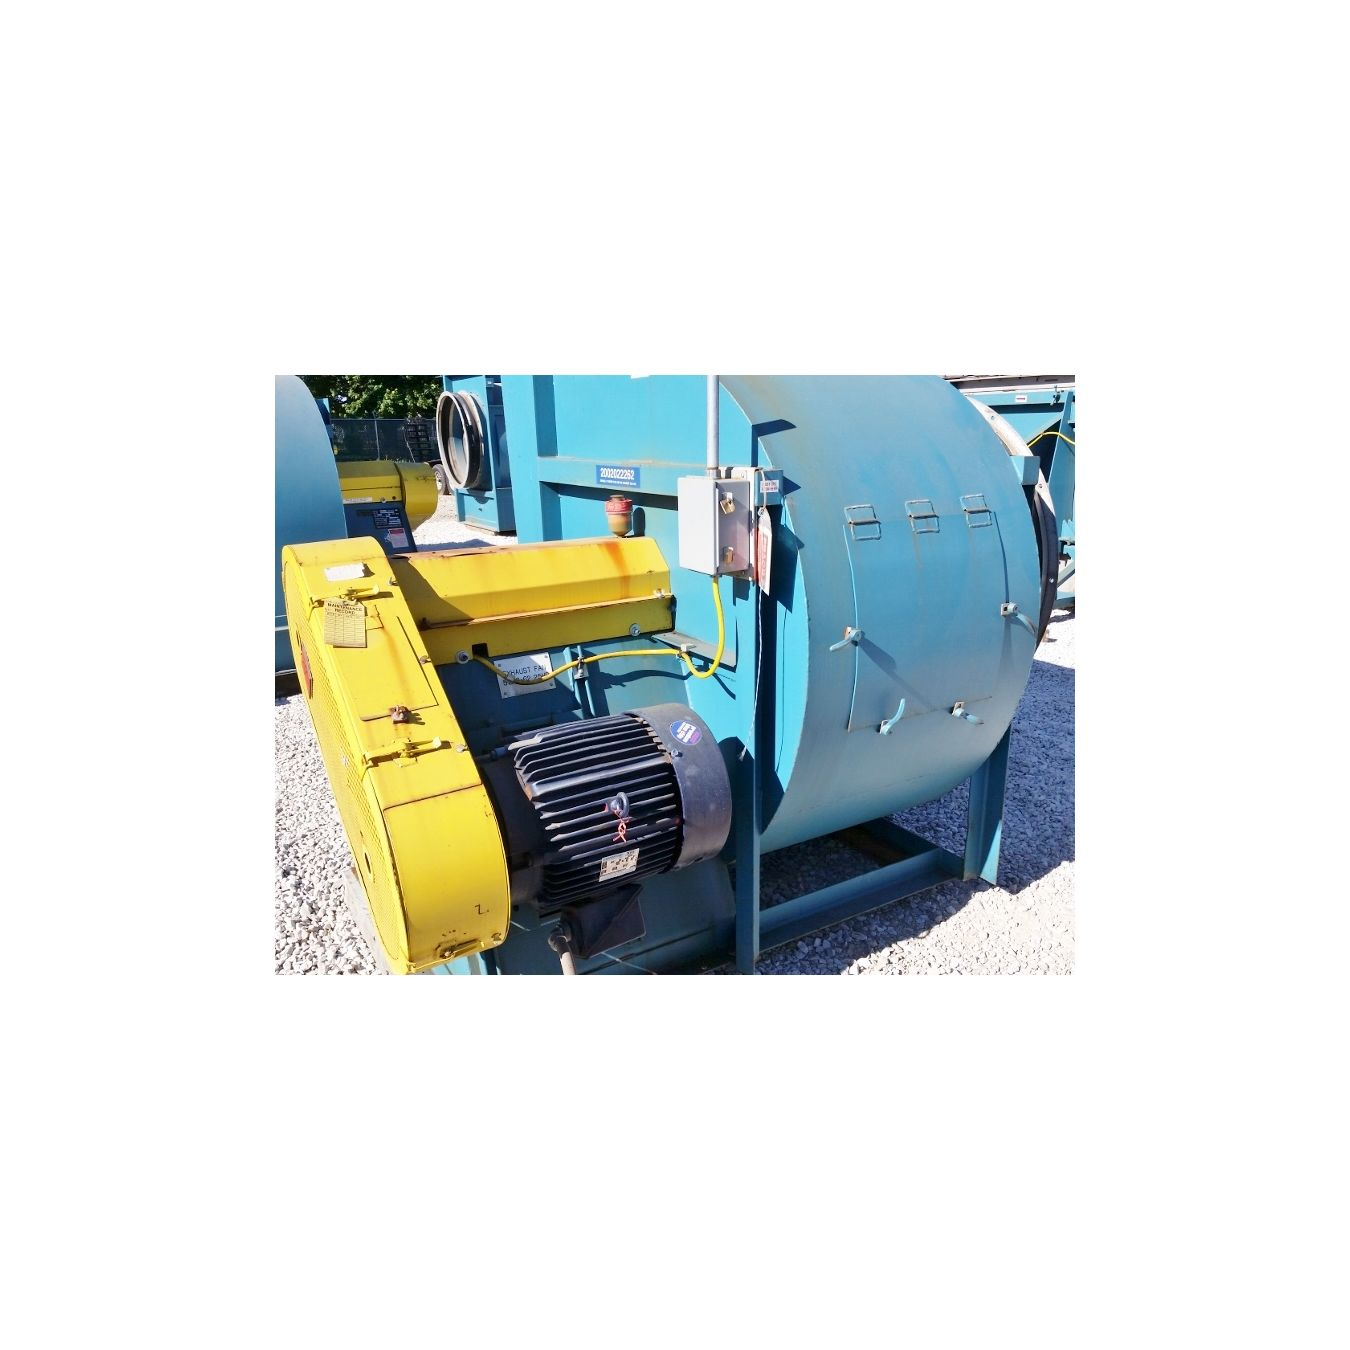 Twin City Fans And Blowers : Used cfm quot sp twin city fan blower industrial